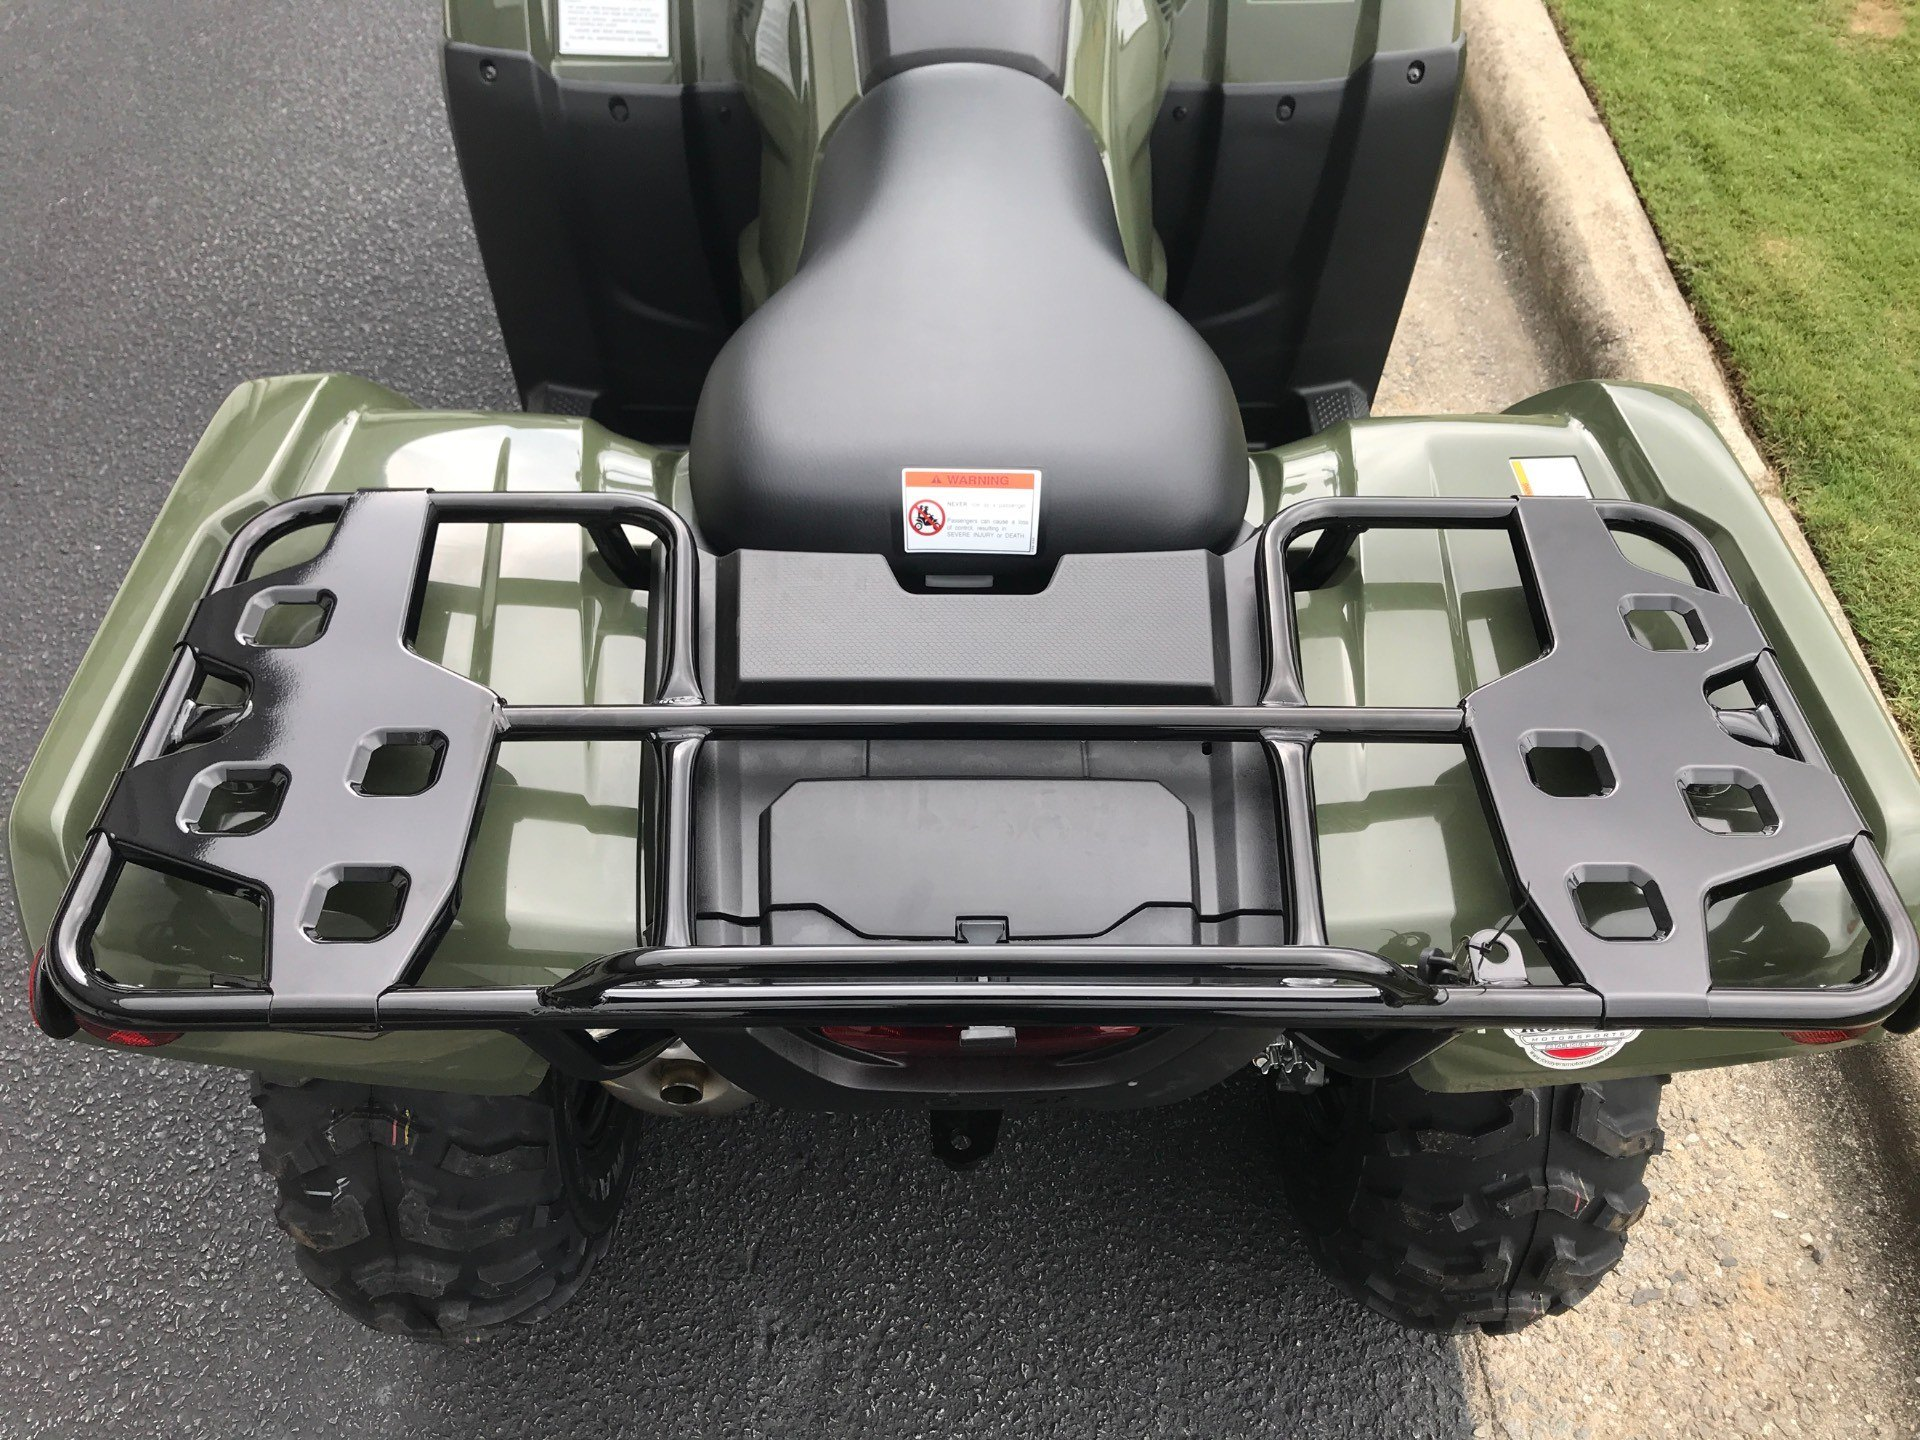 2021 Honda FourTrax Rancher in Greenville, North Carolina - Photo 11